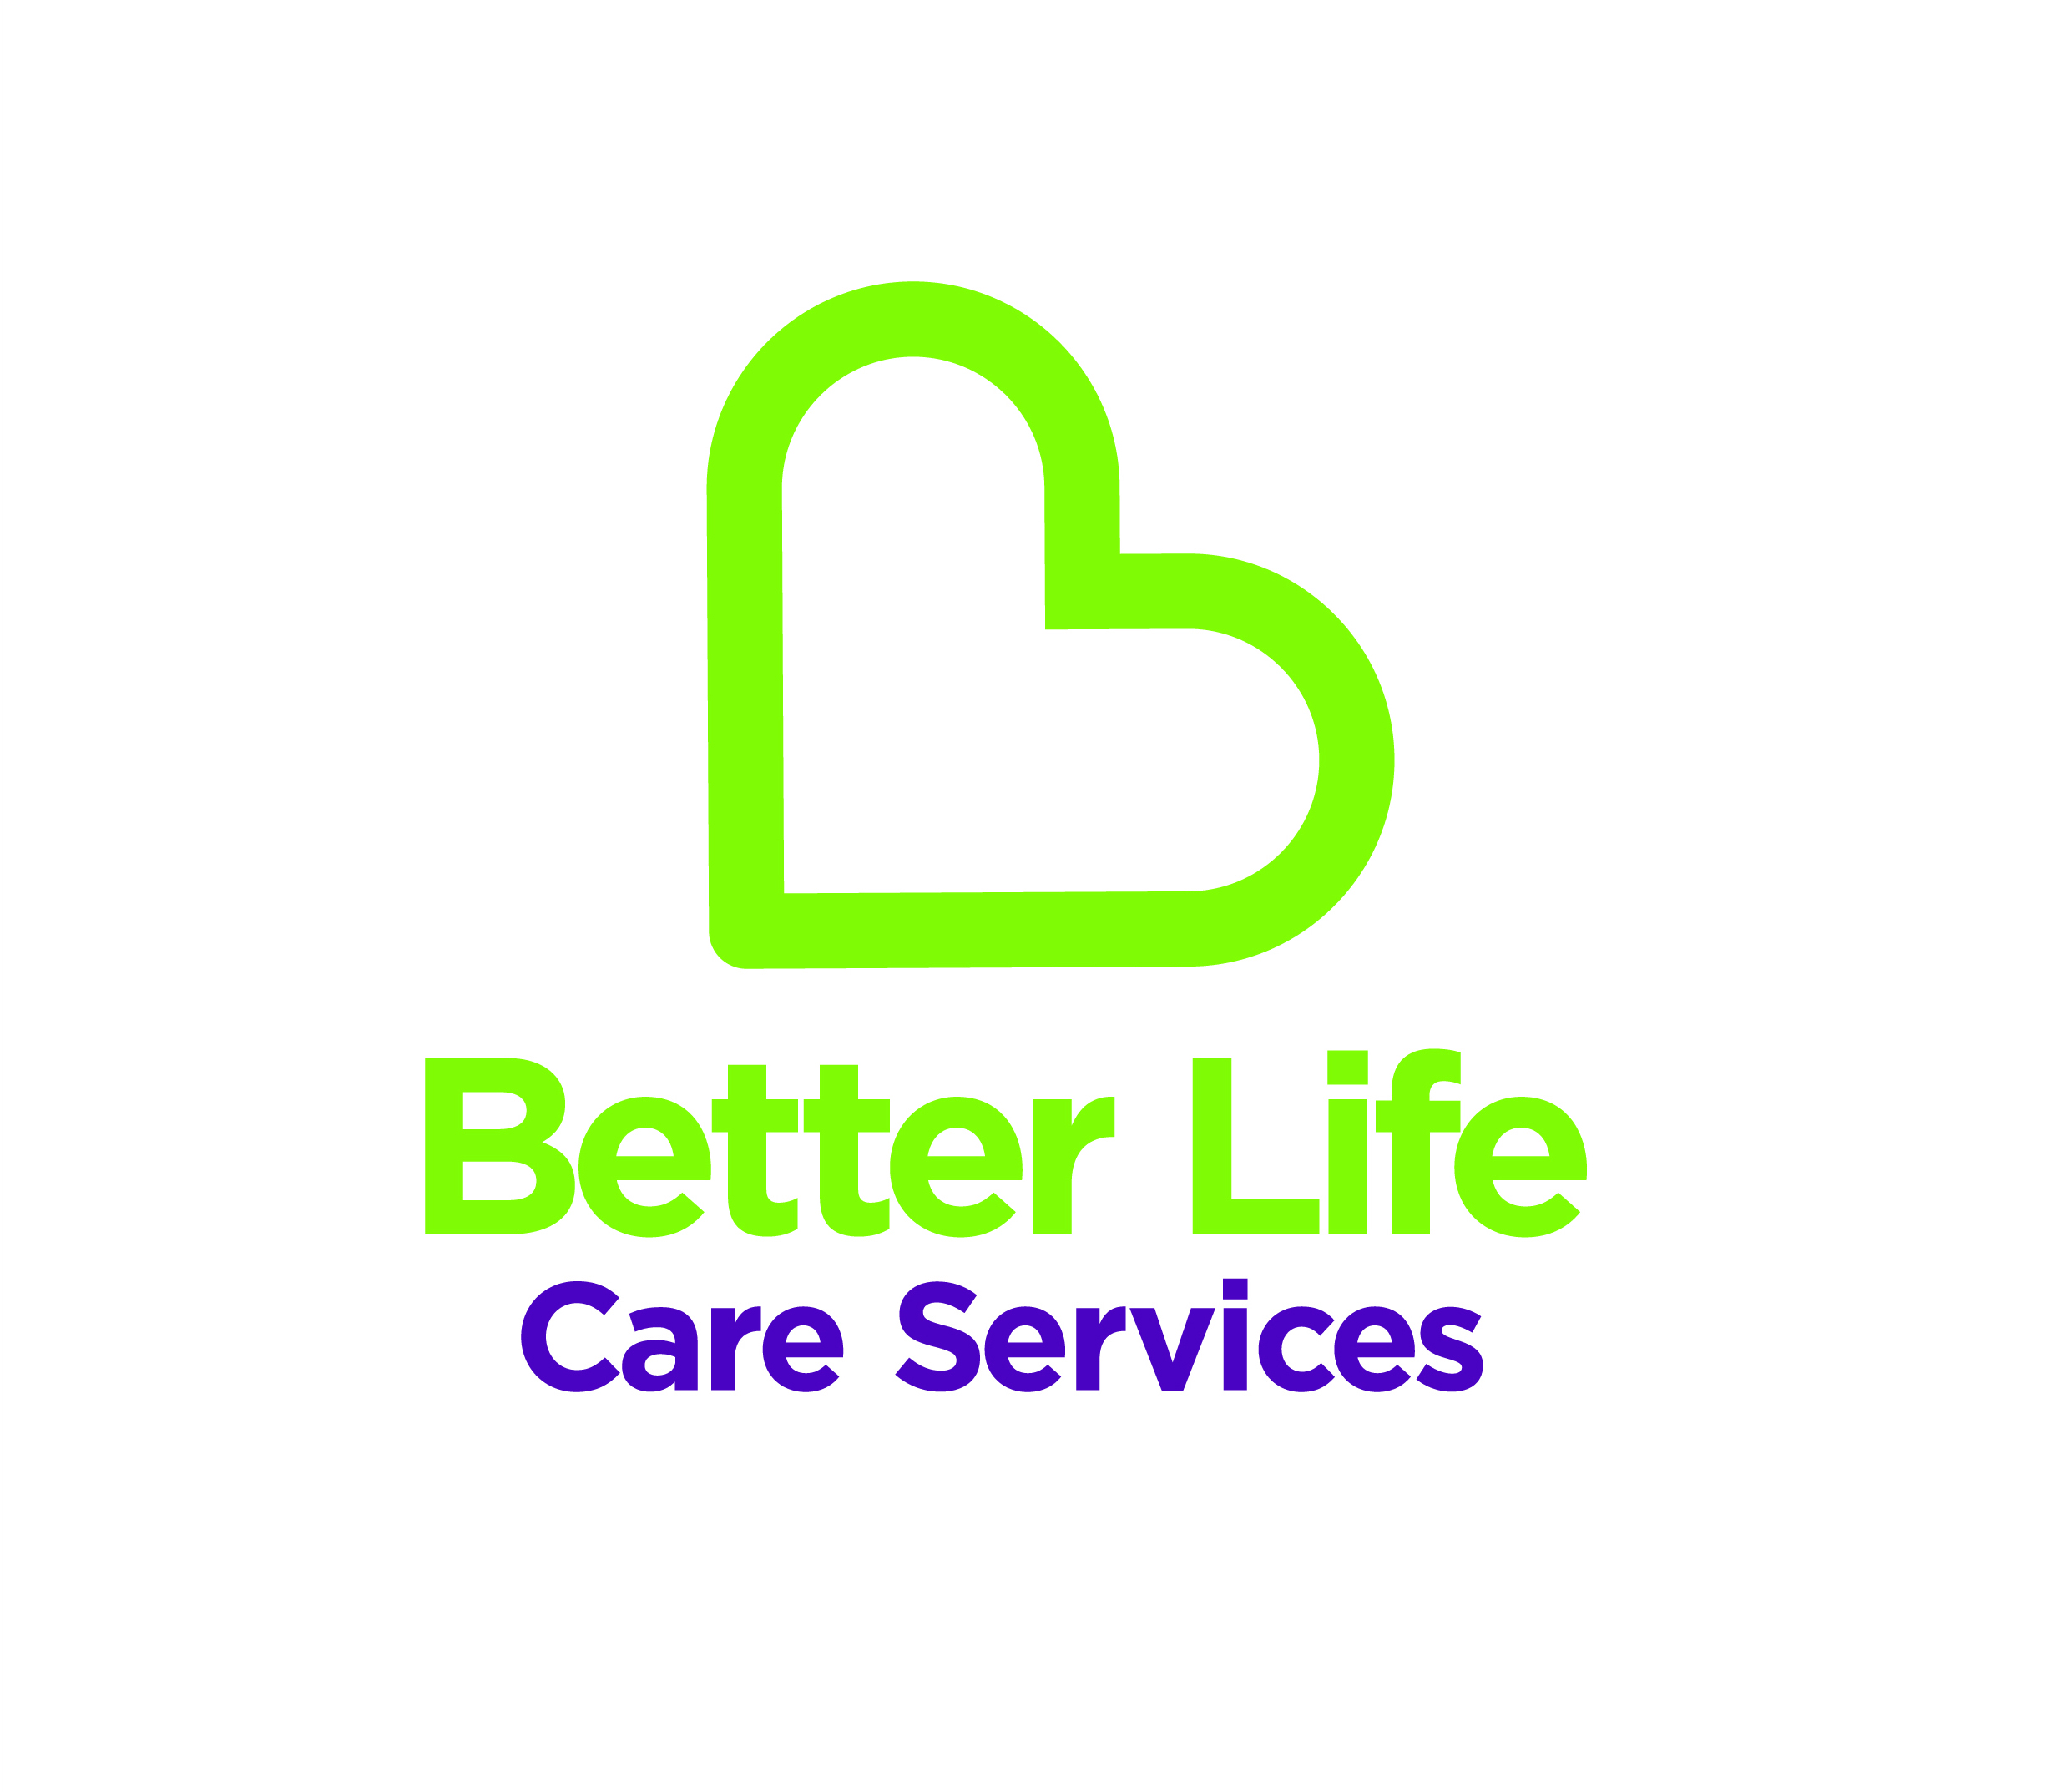 Better Life Care Services